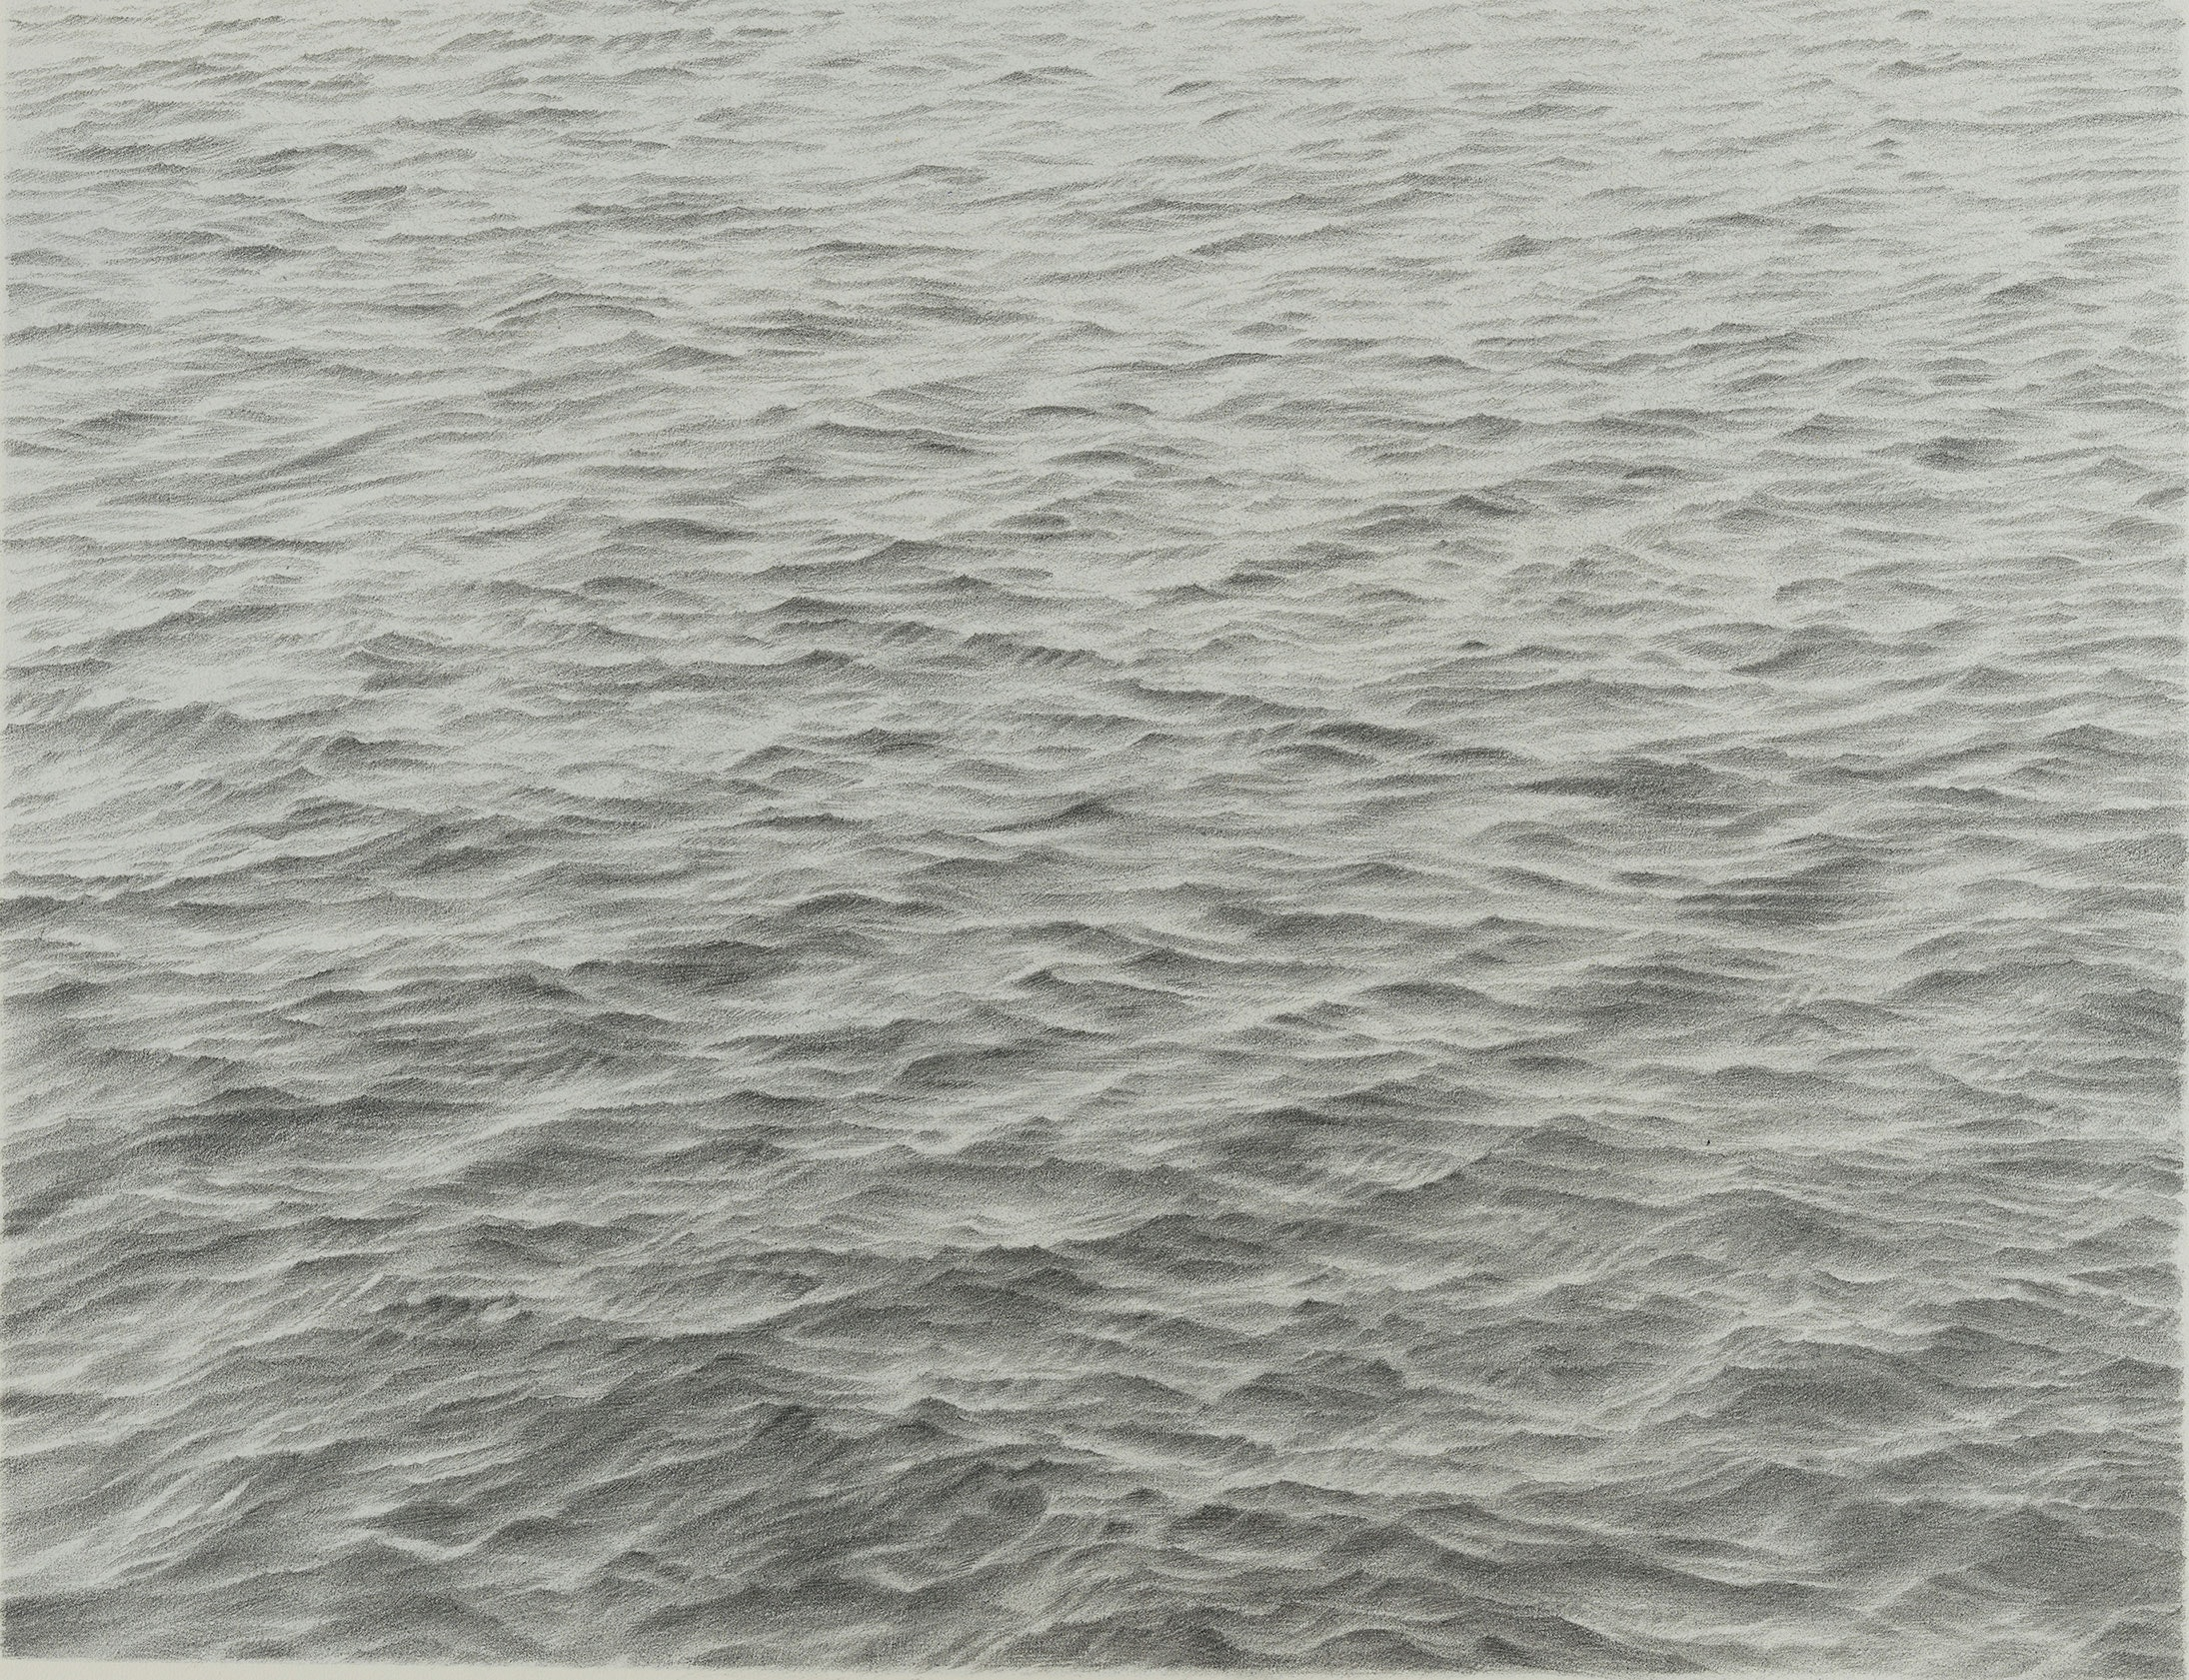 Vija Celmins, <em>Untitled (Ocean)</em>, 1973. Graphite on paper, 11 1/2 x 14 3/4 inches. © Vija Celmins. Courtesy the artist and Matthew Marks Gallery.